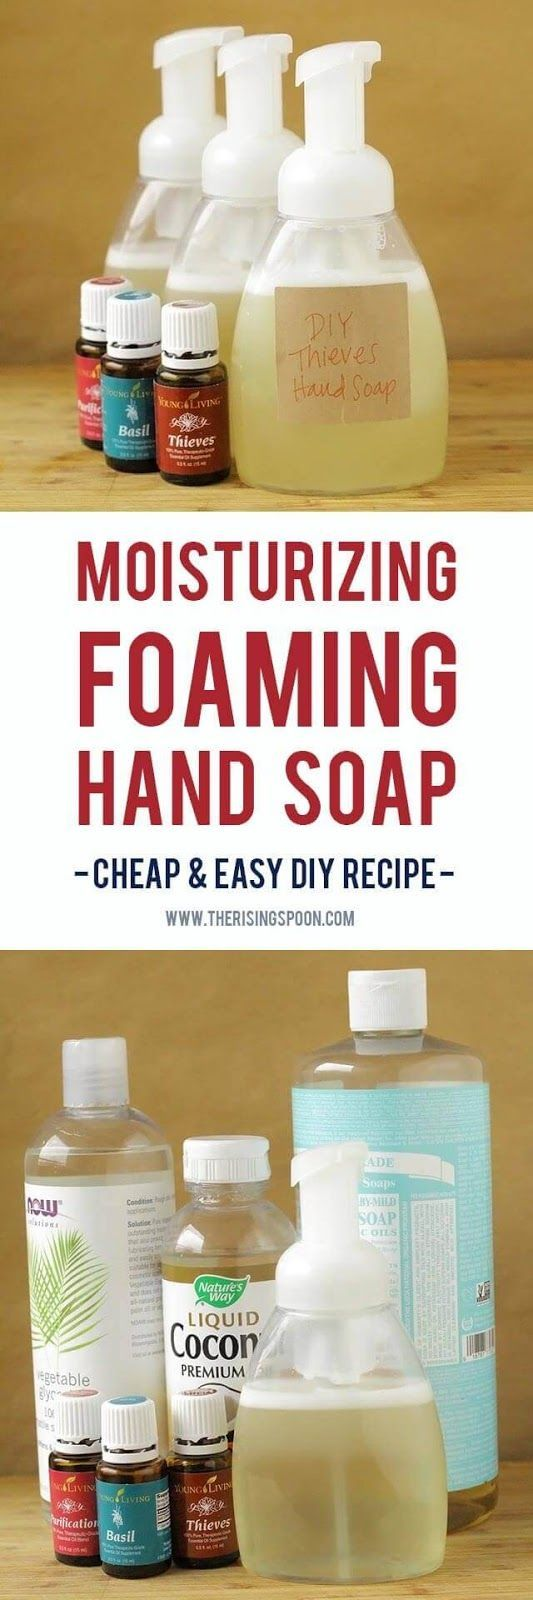 Want to make your own foaming hand soap at home? It's not hard! Try my super easy DIY recipe using a few simple and non-toxic ingredients like liquid castile soap, water, moisturizing liquid carrier oils, and essential oils. This homemade version costs pe